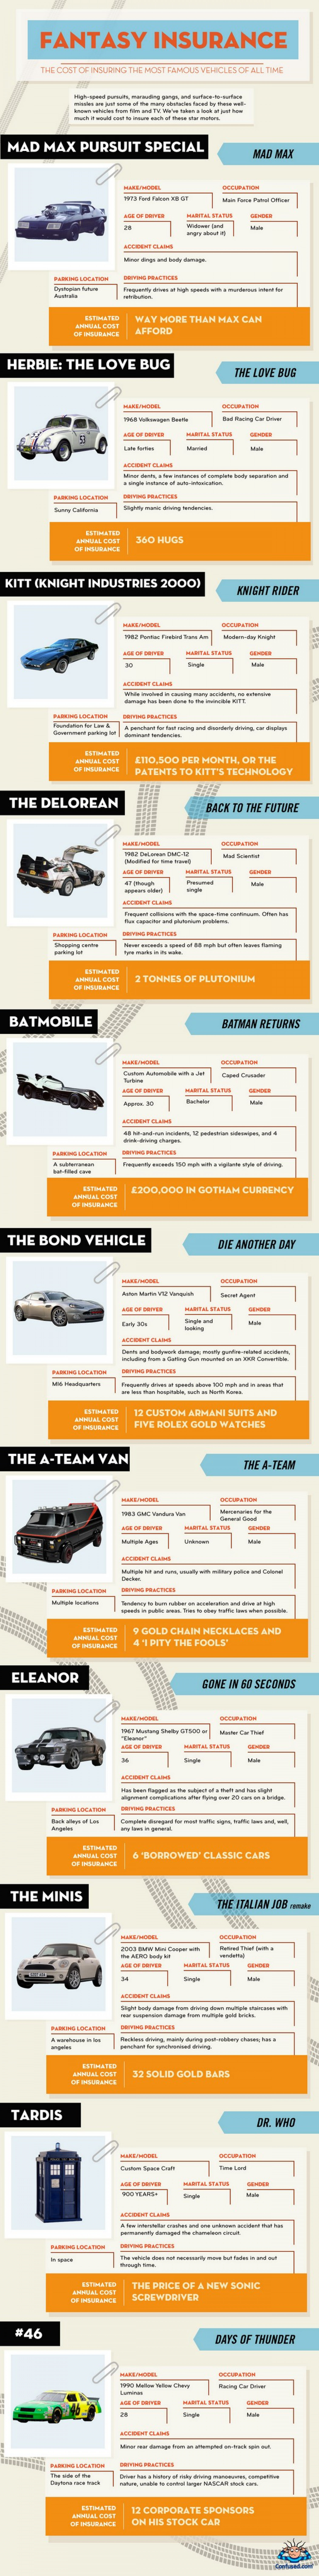 Fantasy Insurance Infographic